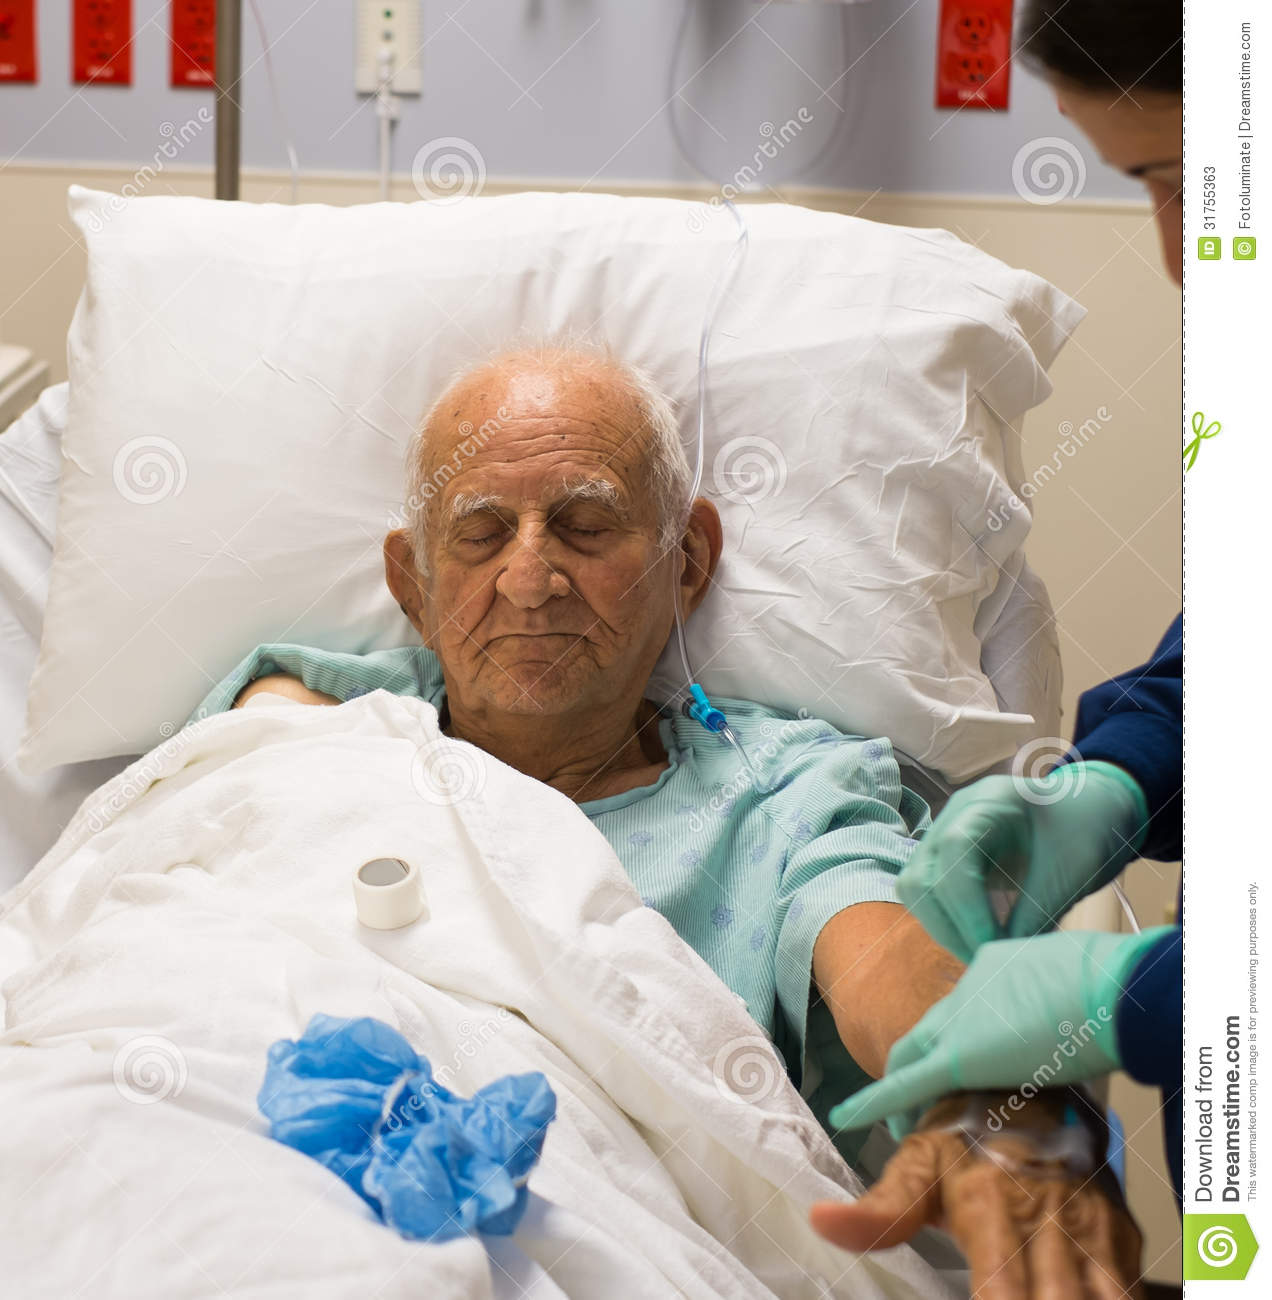 Elderly Person In A Hospital Bed